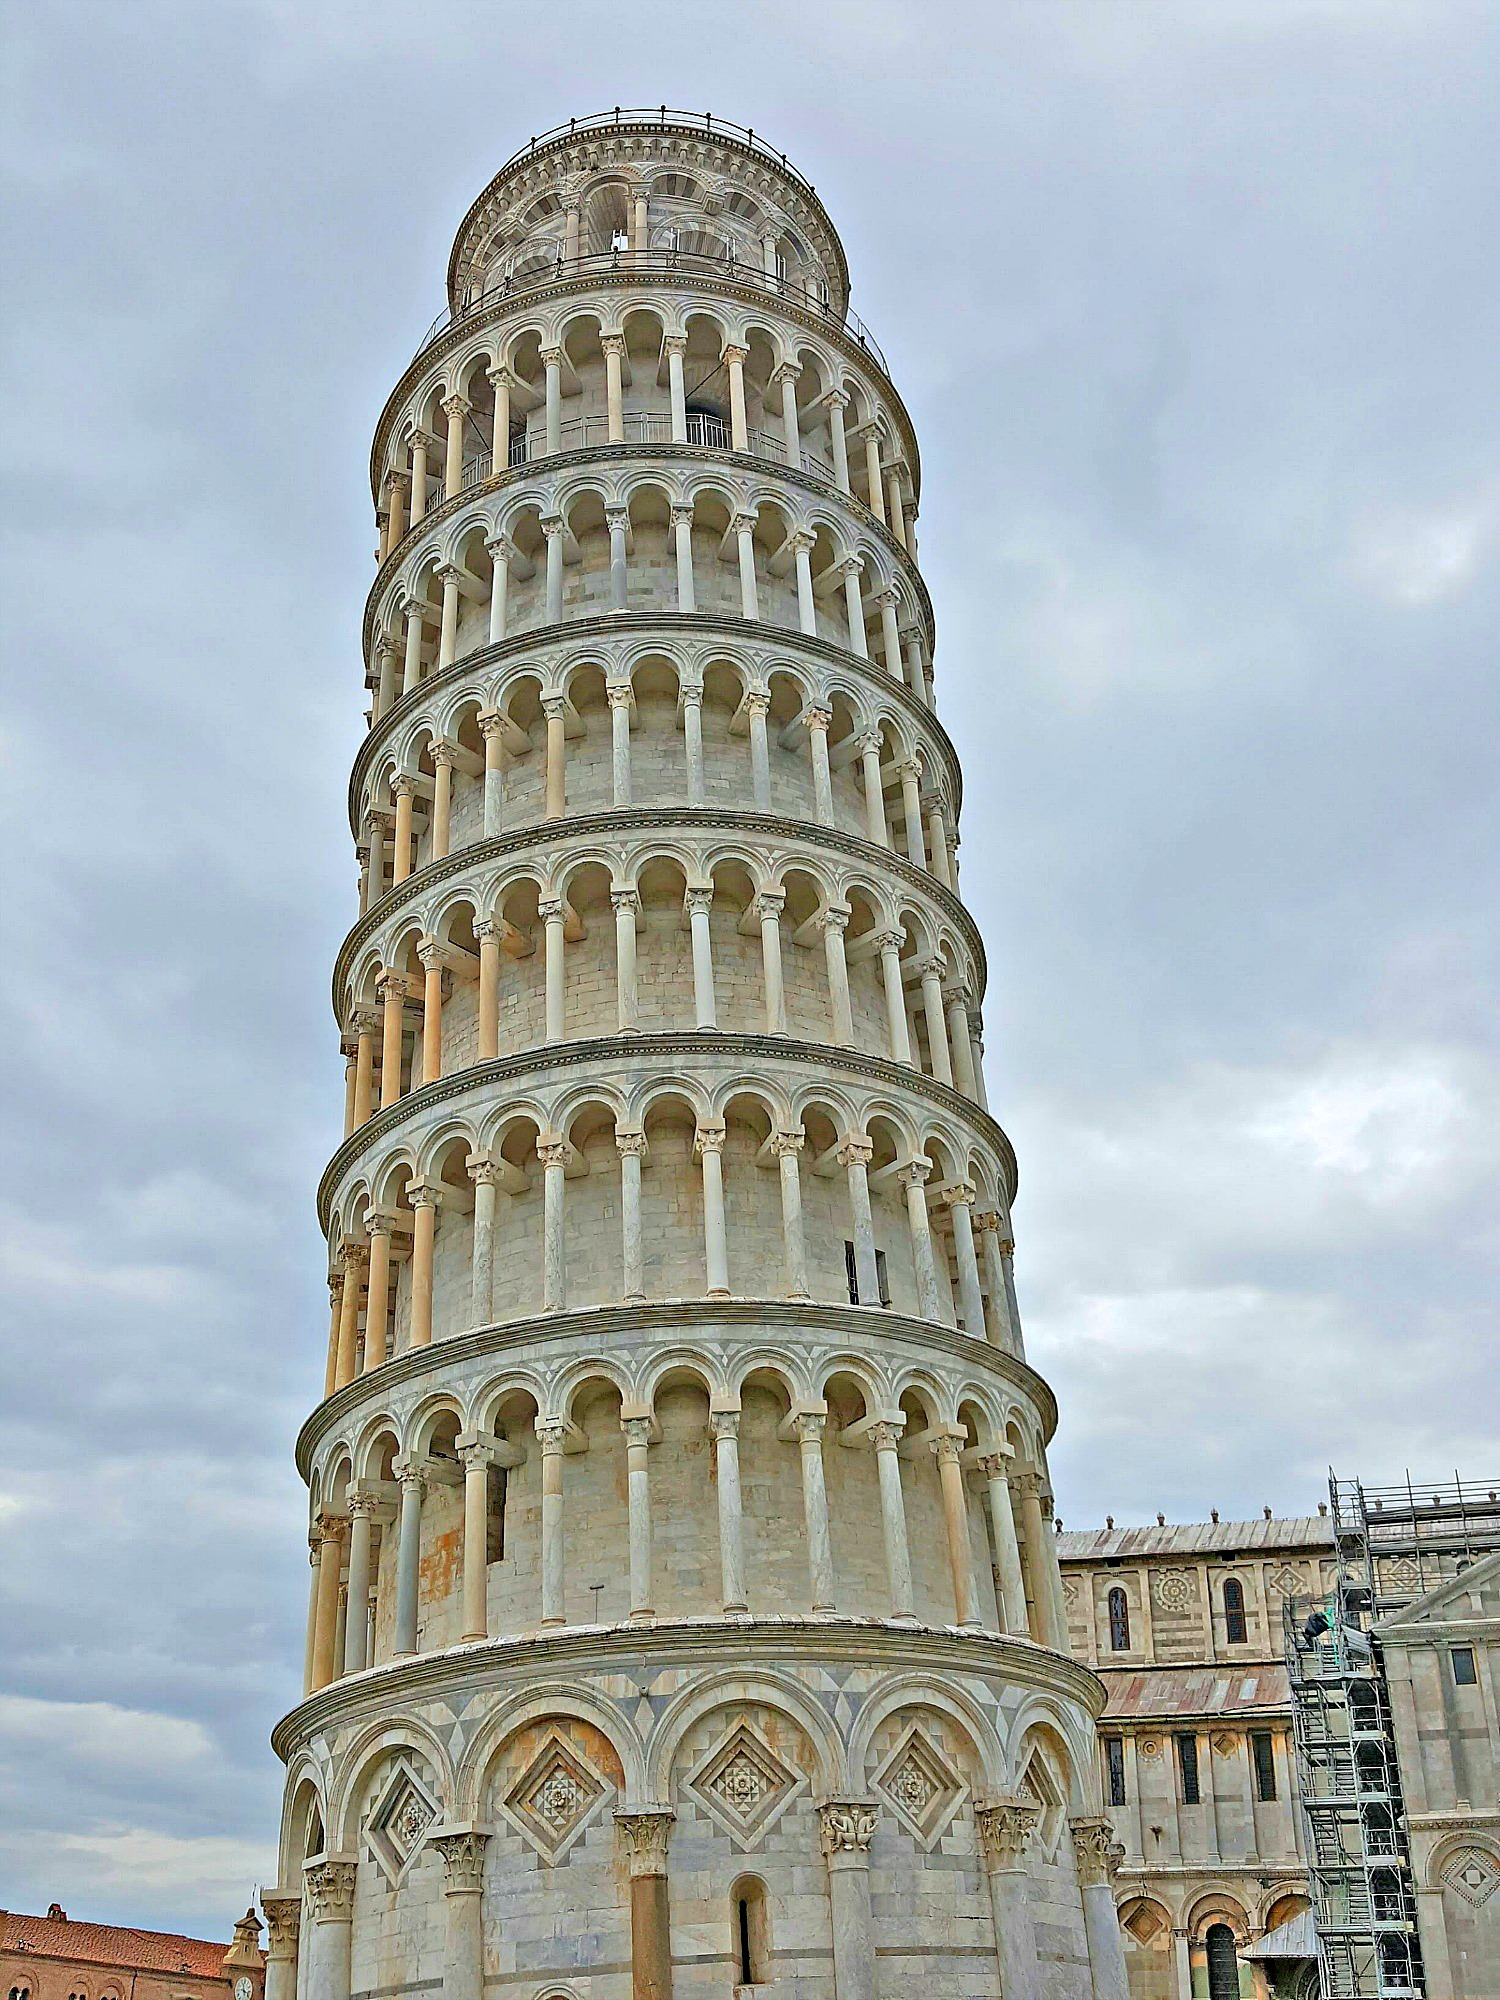 Famous sights in Italy - leaning tower of Pisa.